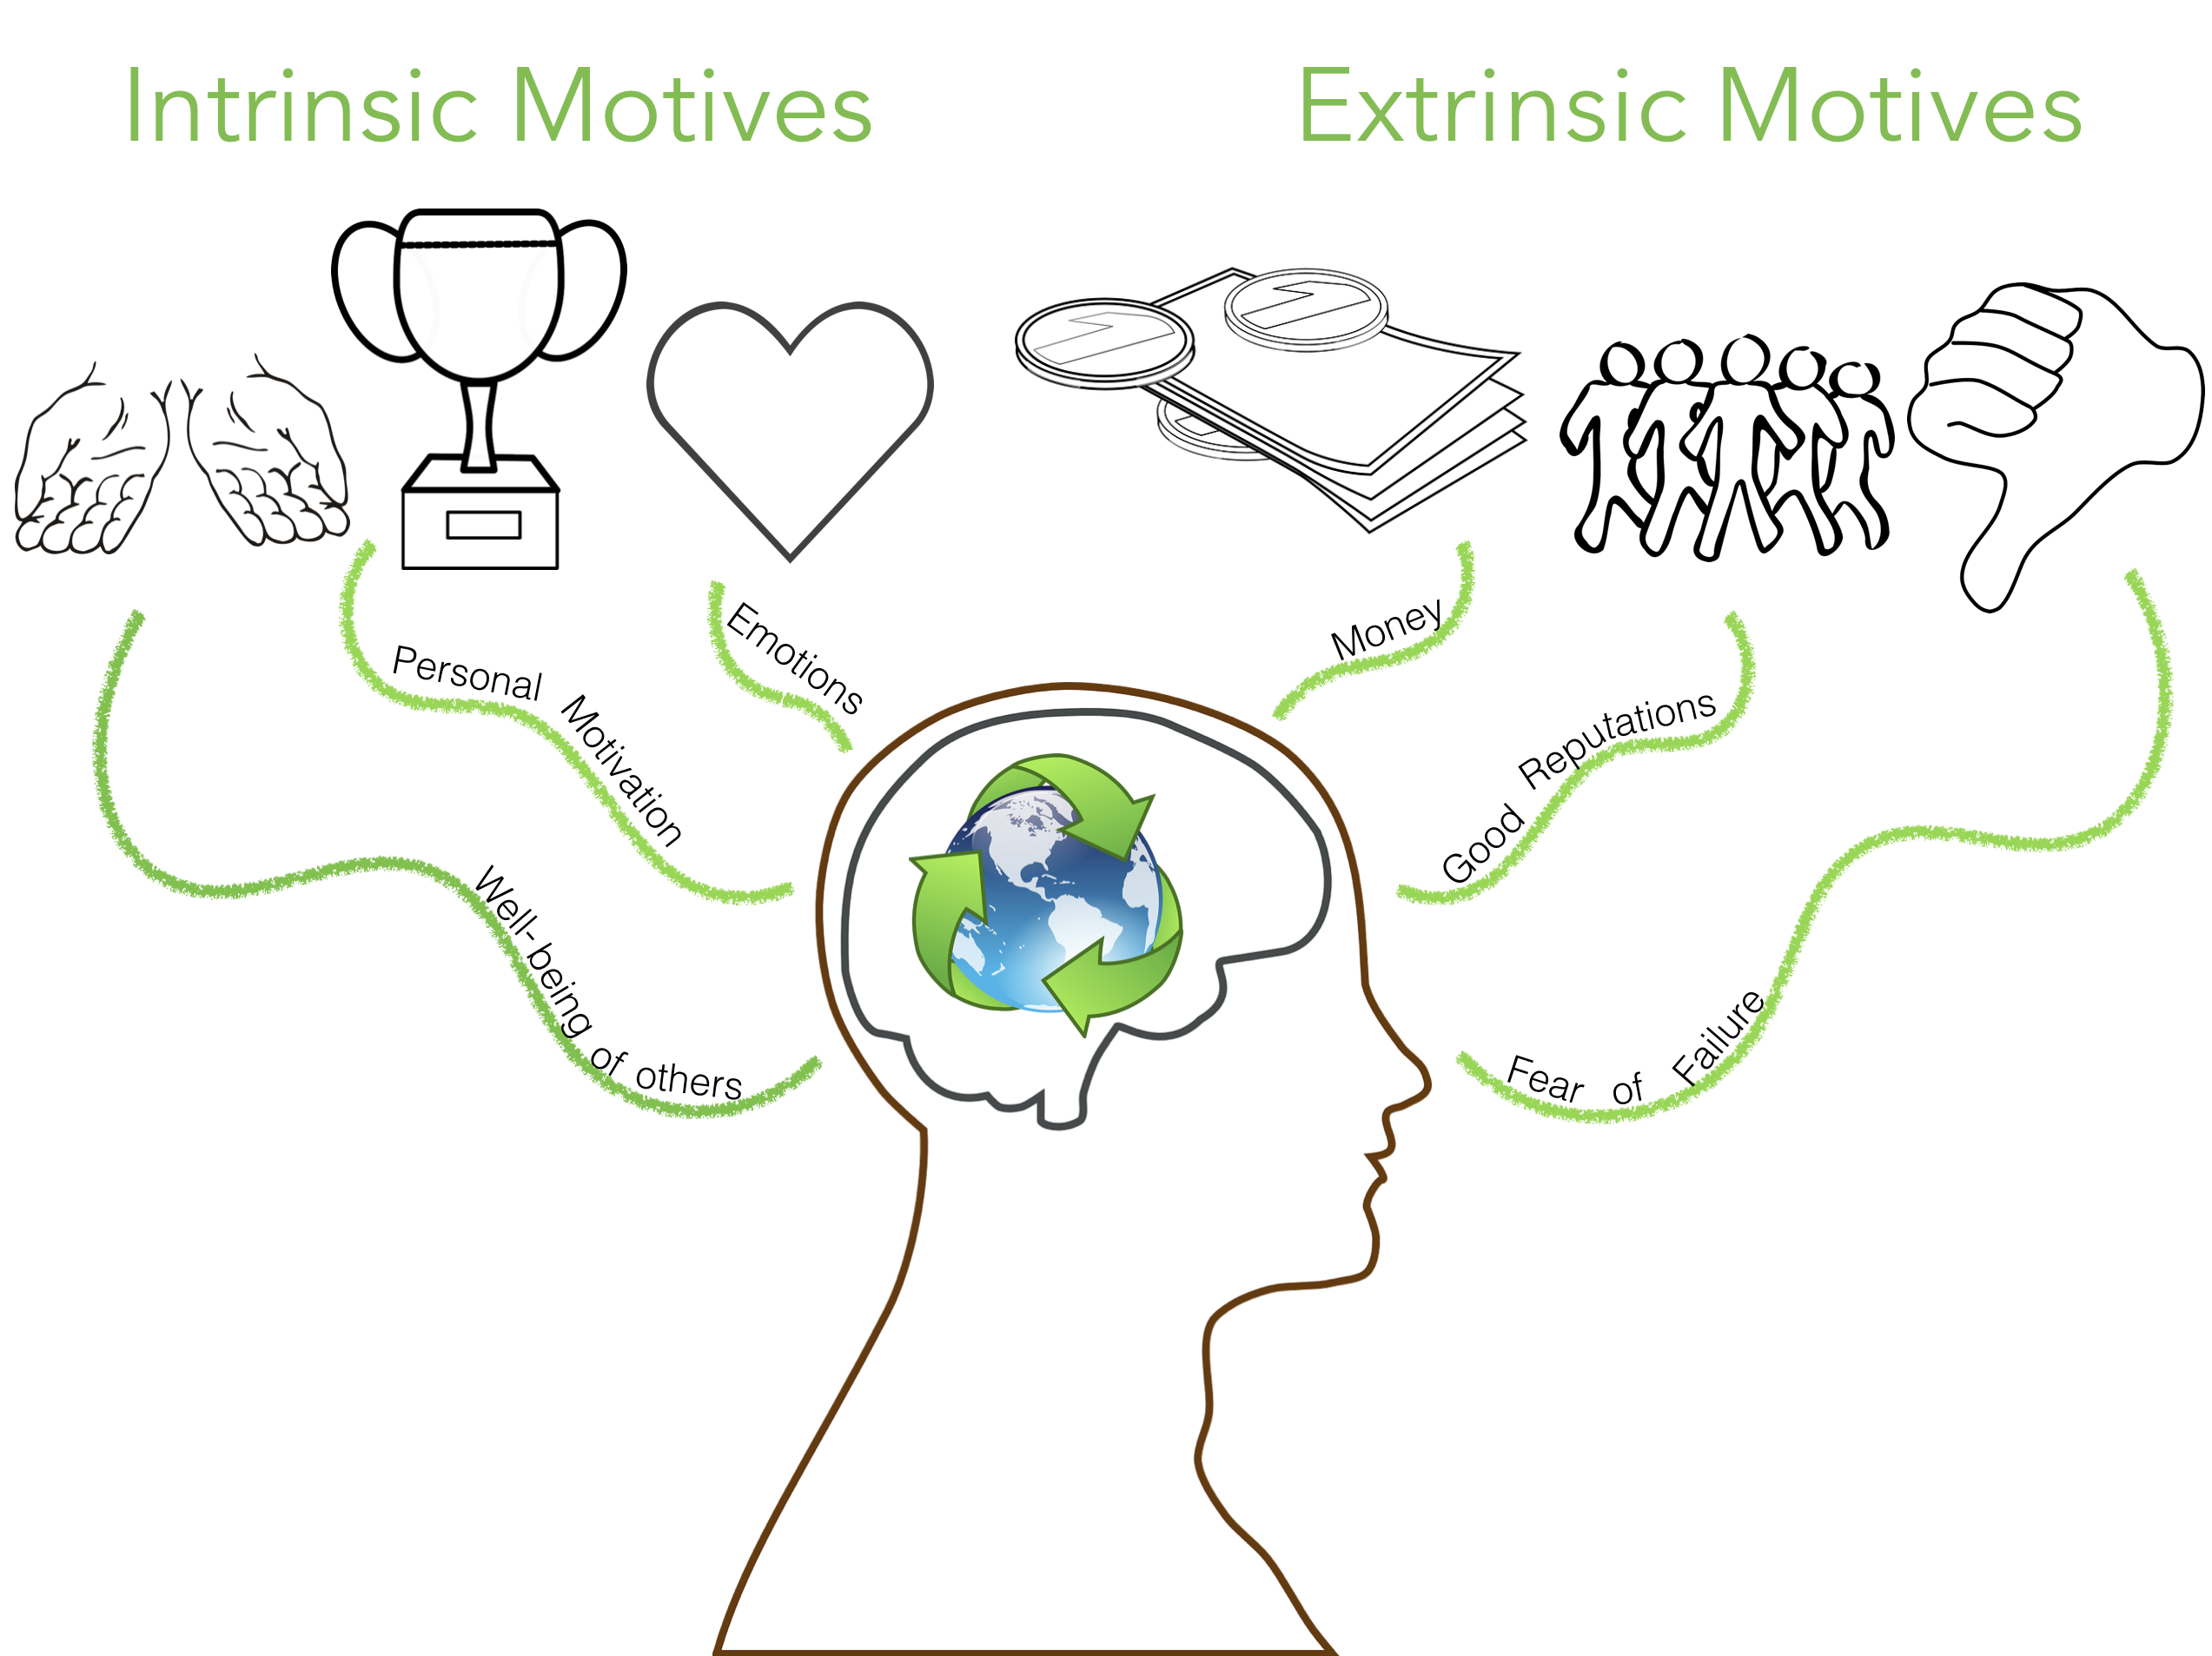 Intrinsic and extrinsic motives graphic showing well-being of others, personal motivation, and emotions as the intrinsic motives and money, good reputations, and fear of failure as the extrinsic motives.